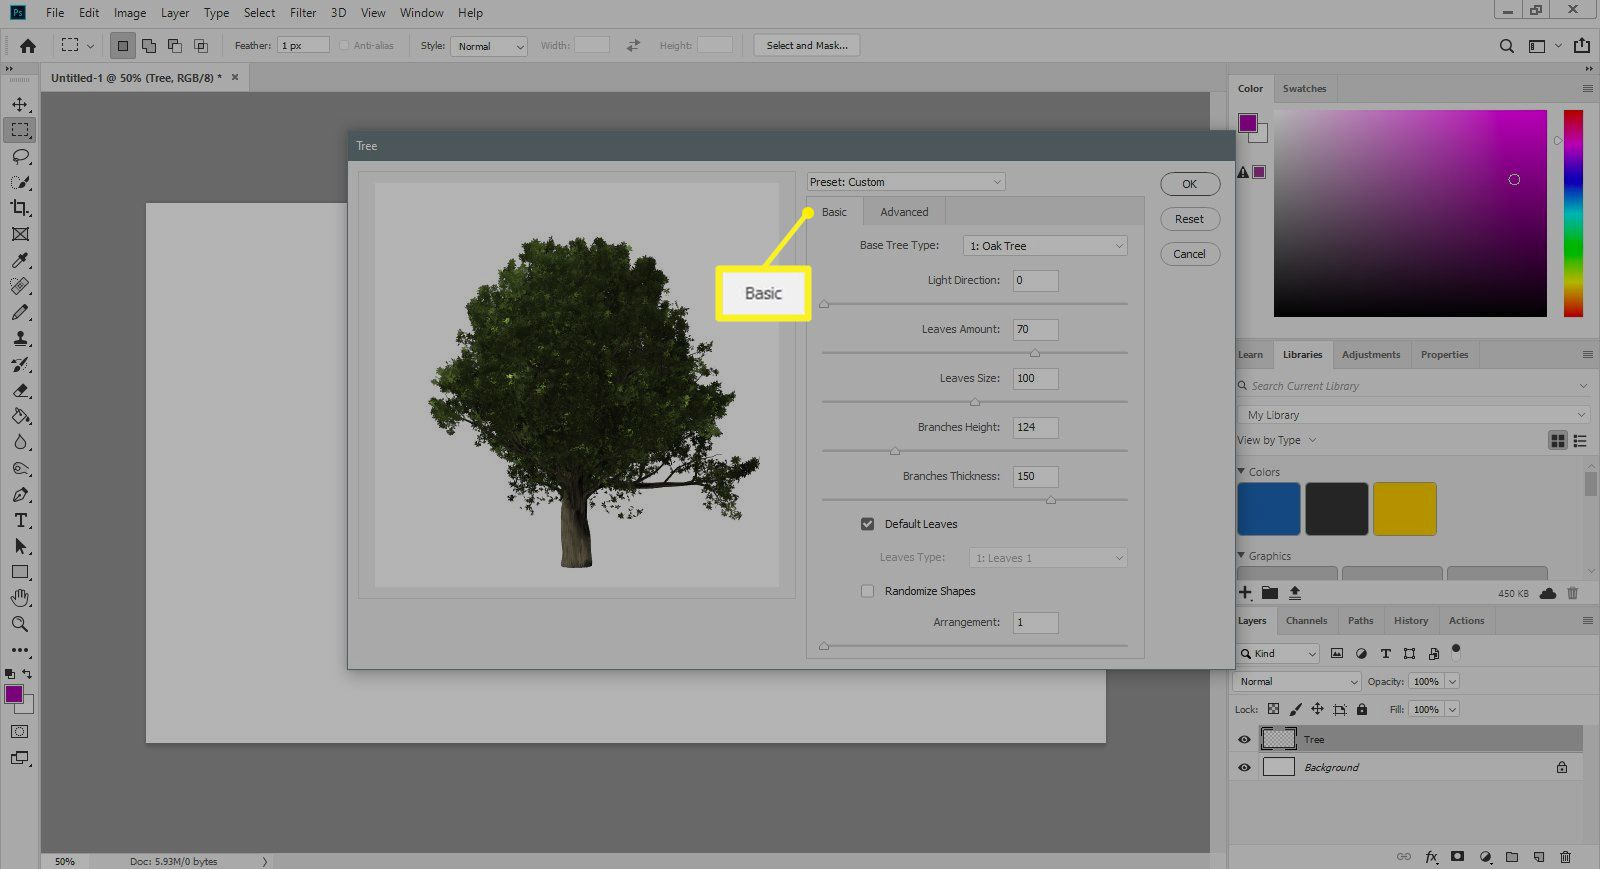 Base tab of tree filter dialogue in Photoshop